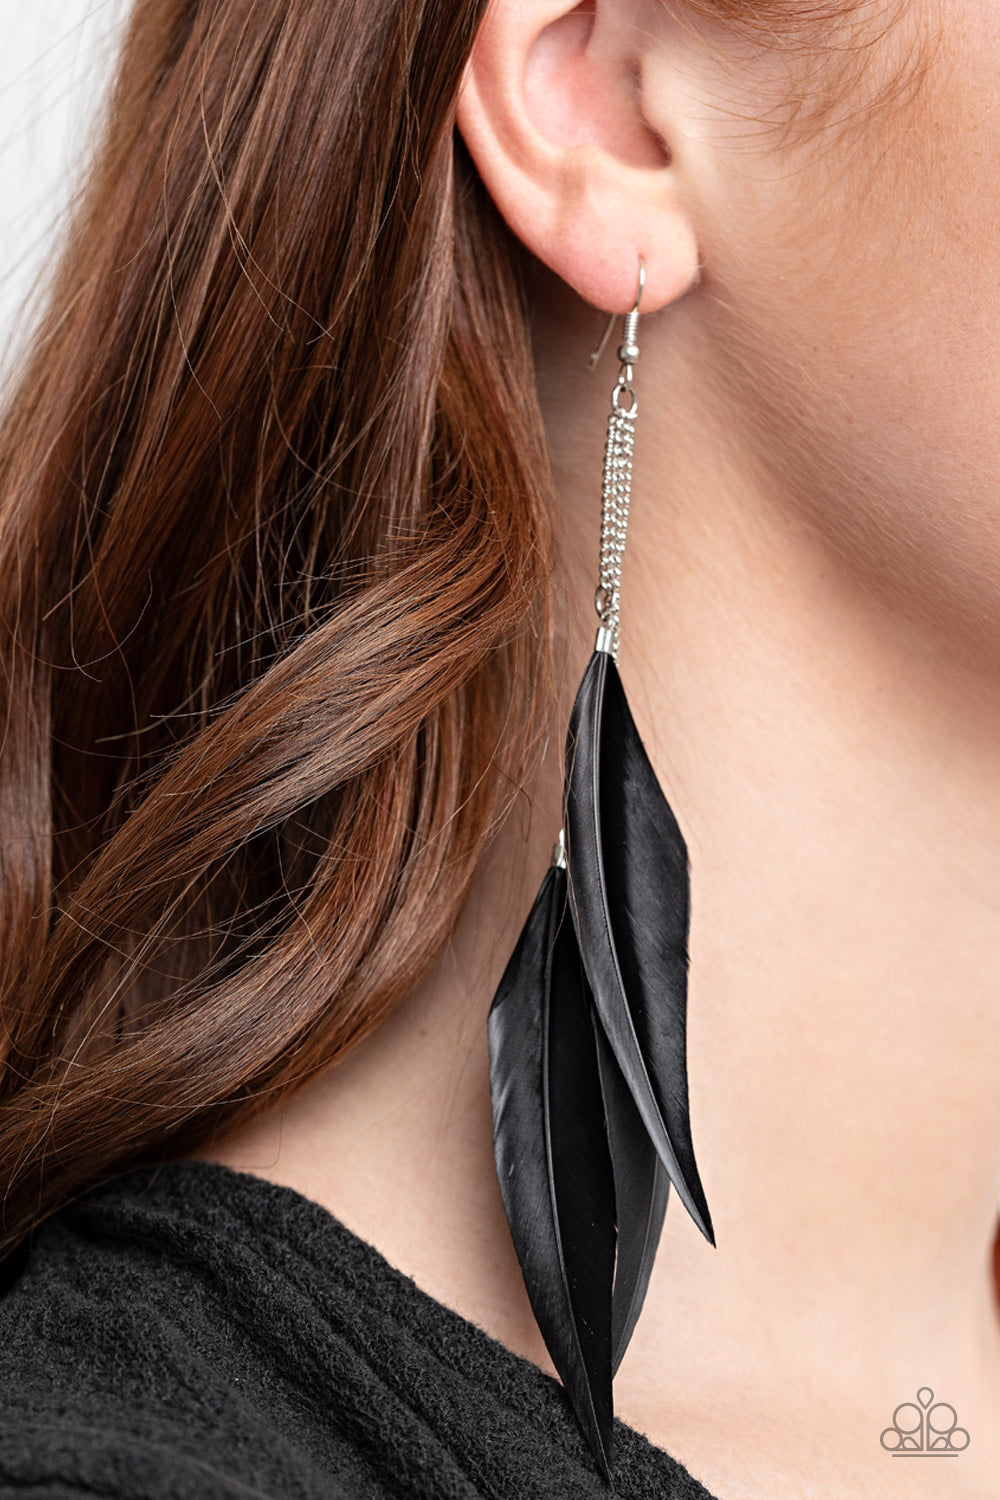 Paparazzi Jewelry & Accessories - West Side Western - Black Earrings. Bling By Titia Boutique